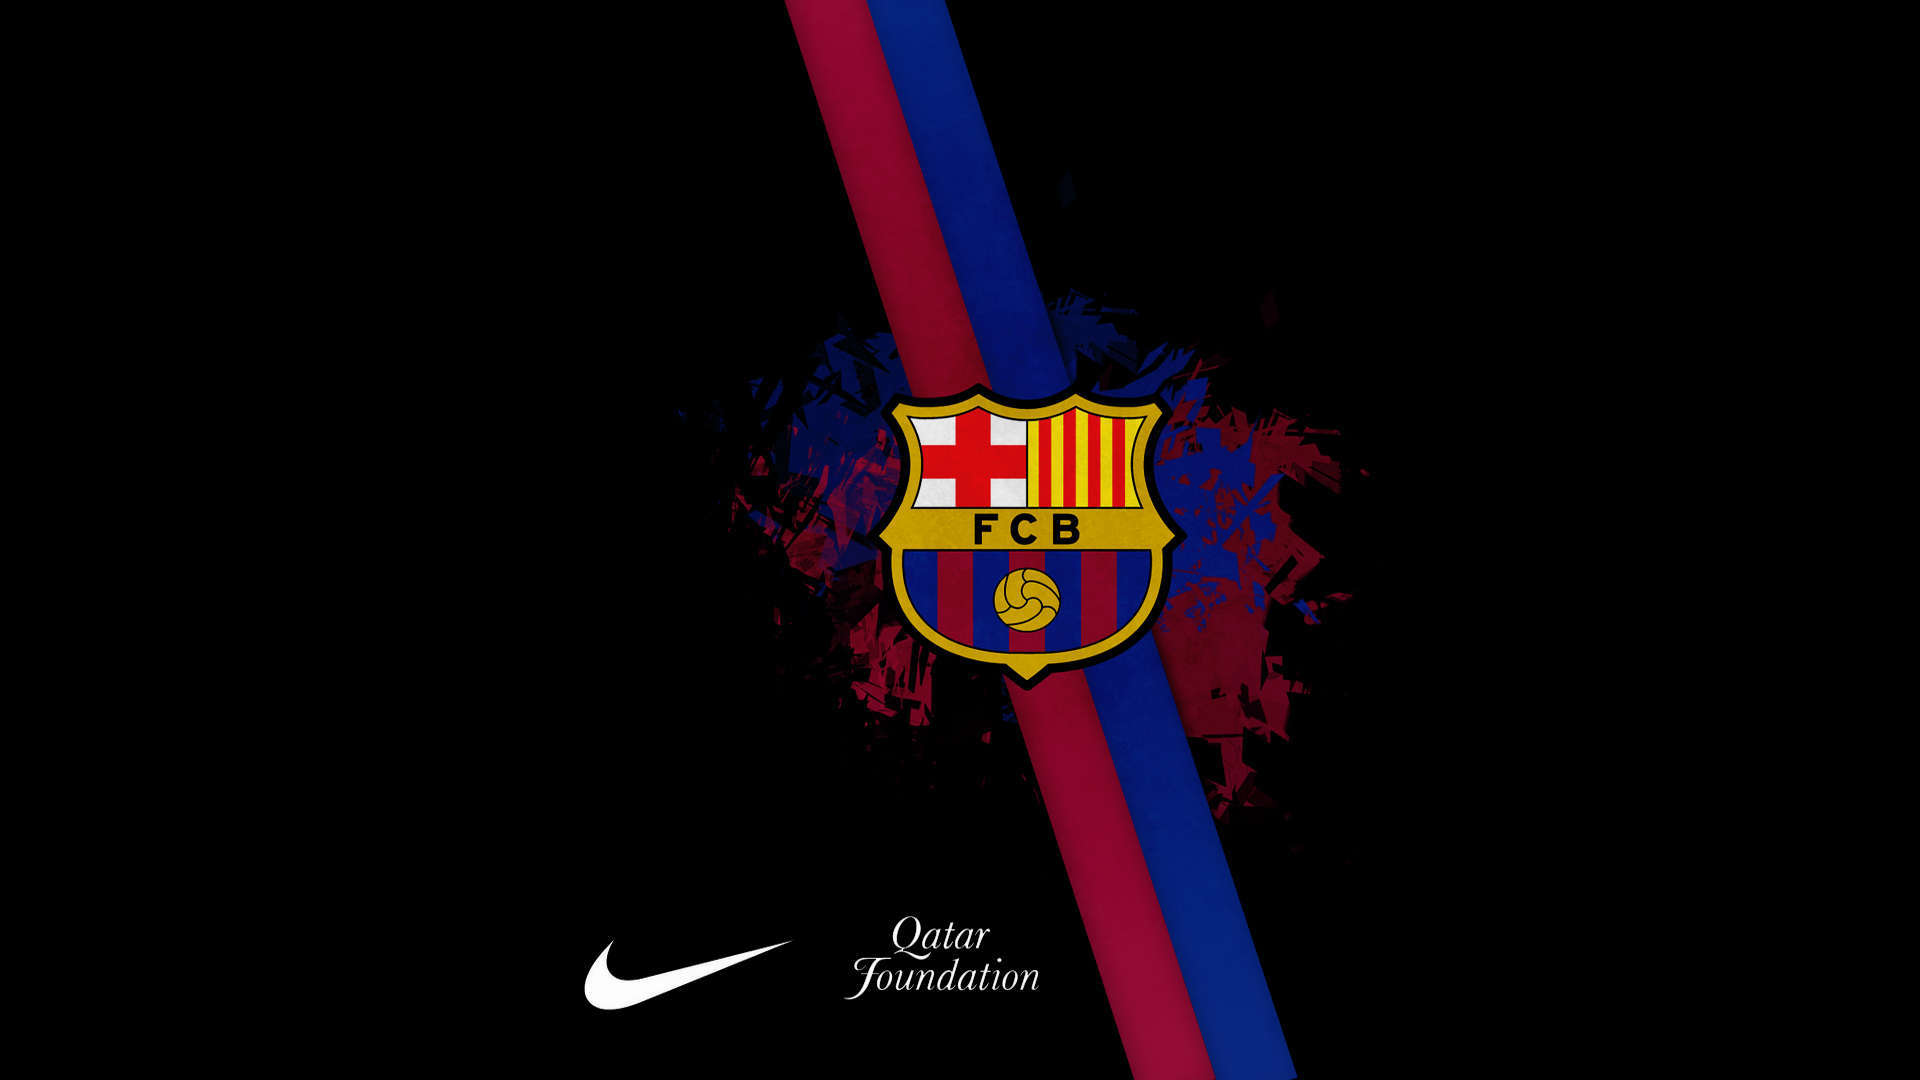 FC Barcelona Logo Wallpaper Download | PixelsTalk.Net